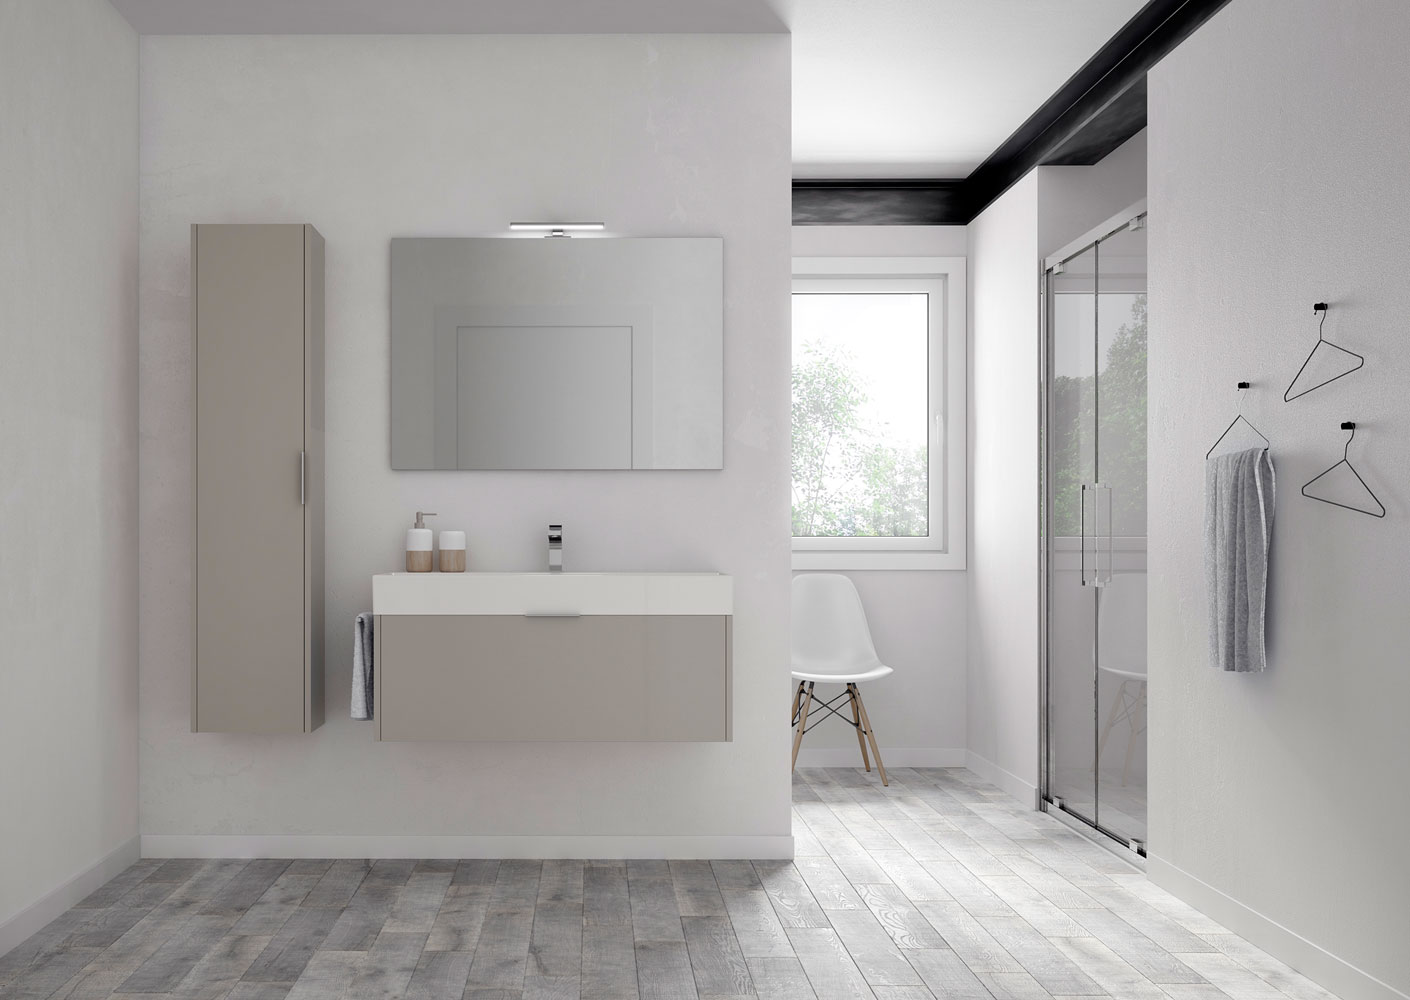 Piano Per Mobile Bagno basic: minimal bathroom furniture for functional bathrooms